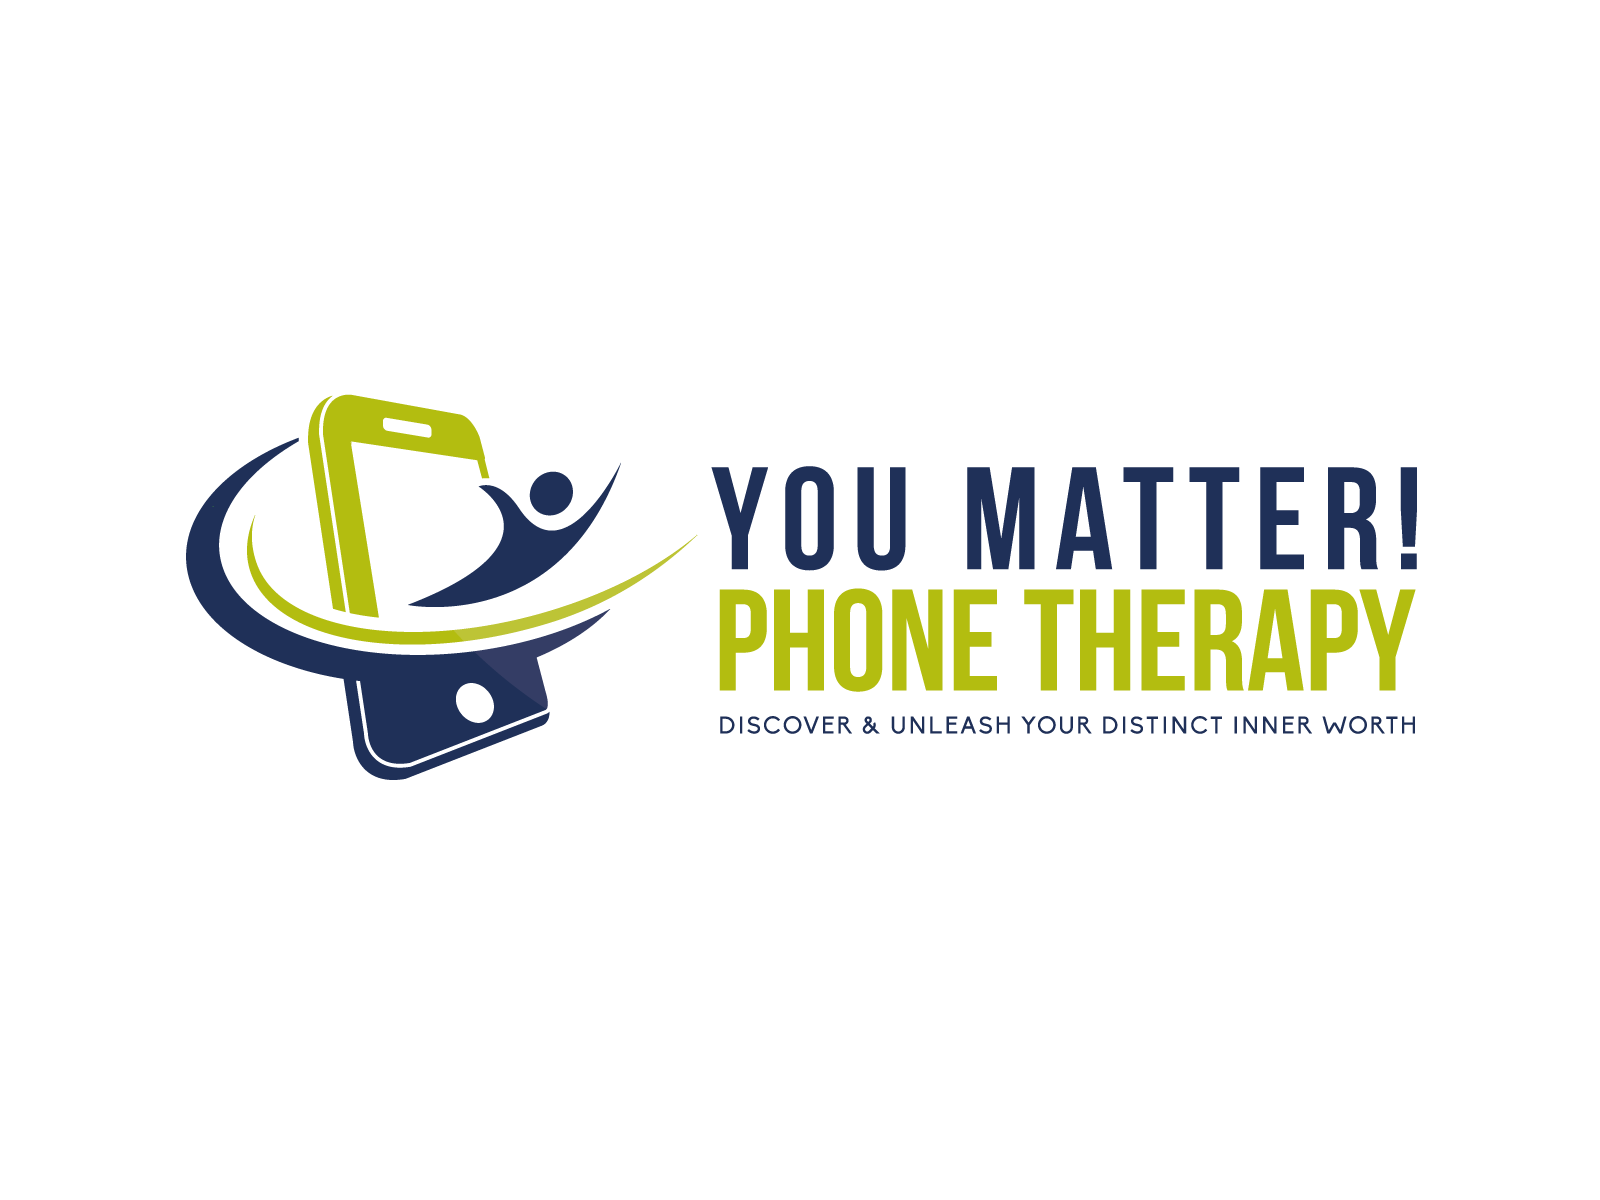 Need a warm, inviting, fresh, creative logo for phone therapy business. More projects to come for the right designer.